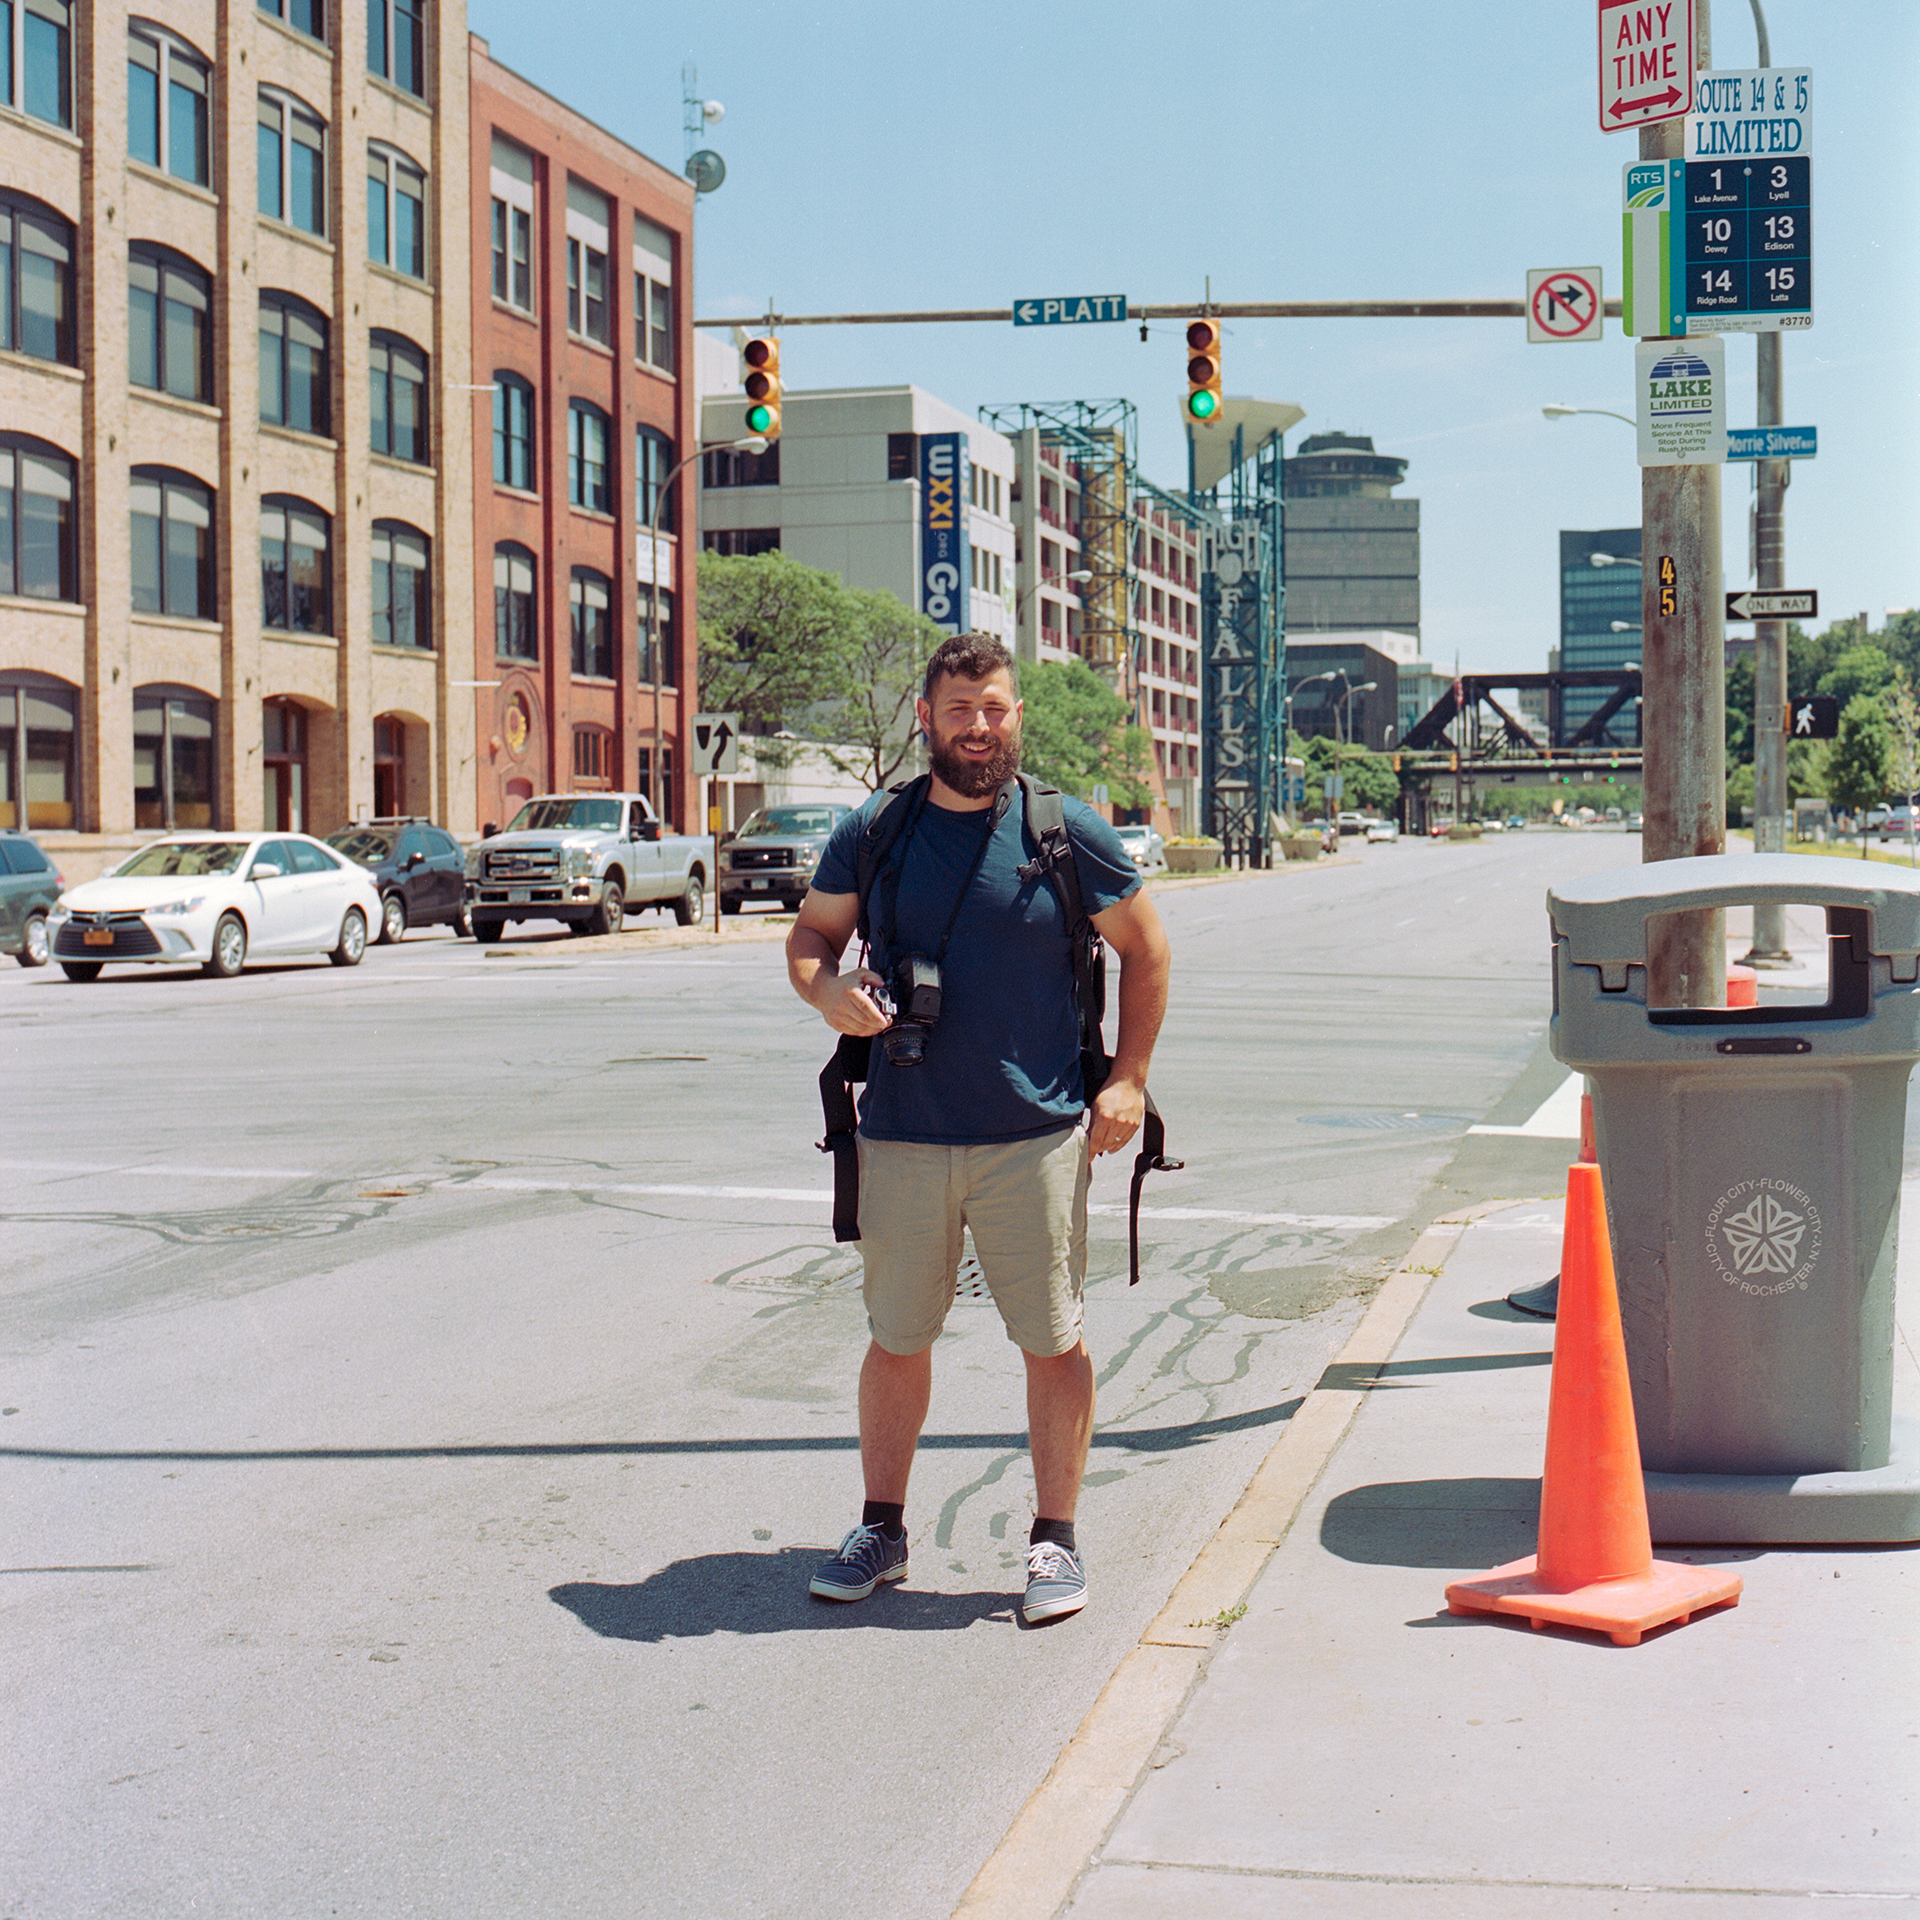 Cameron Marin in Rochester New York near the Kodak Headquarters